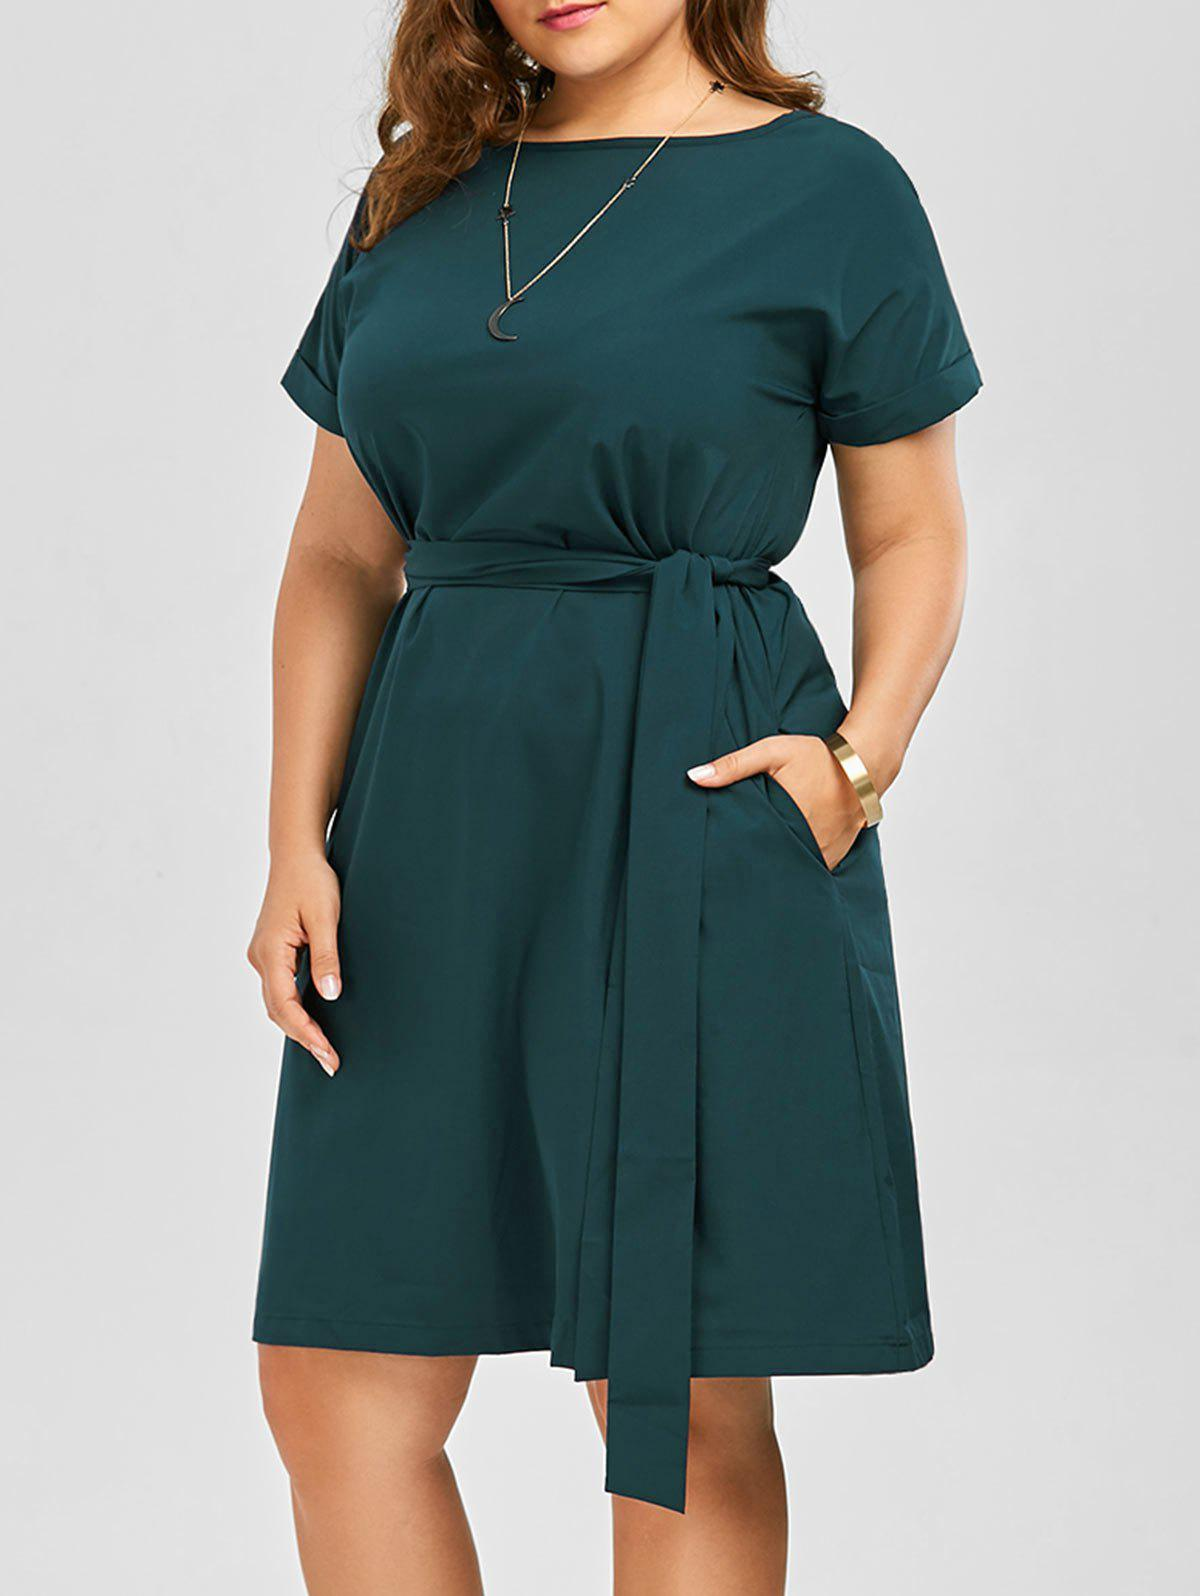 Plus Size Belted Knee Length Dress With Pockets plus size double pockets knitted dress